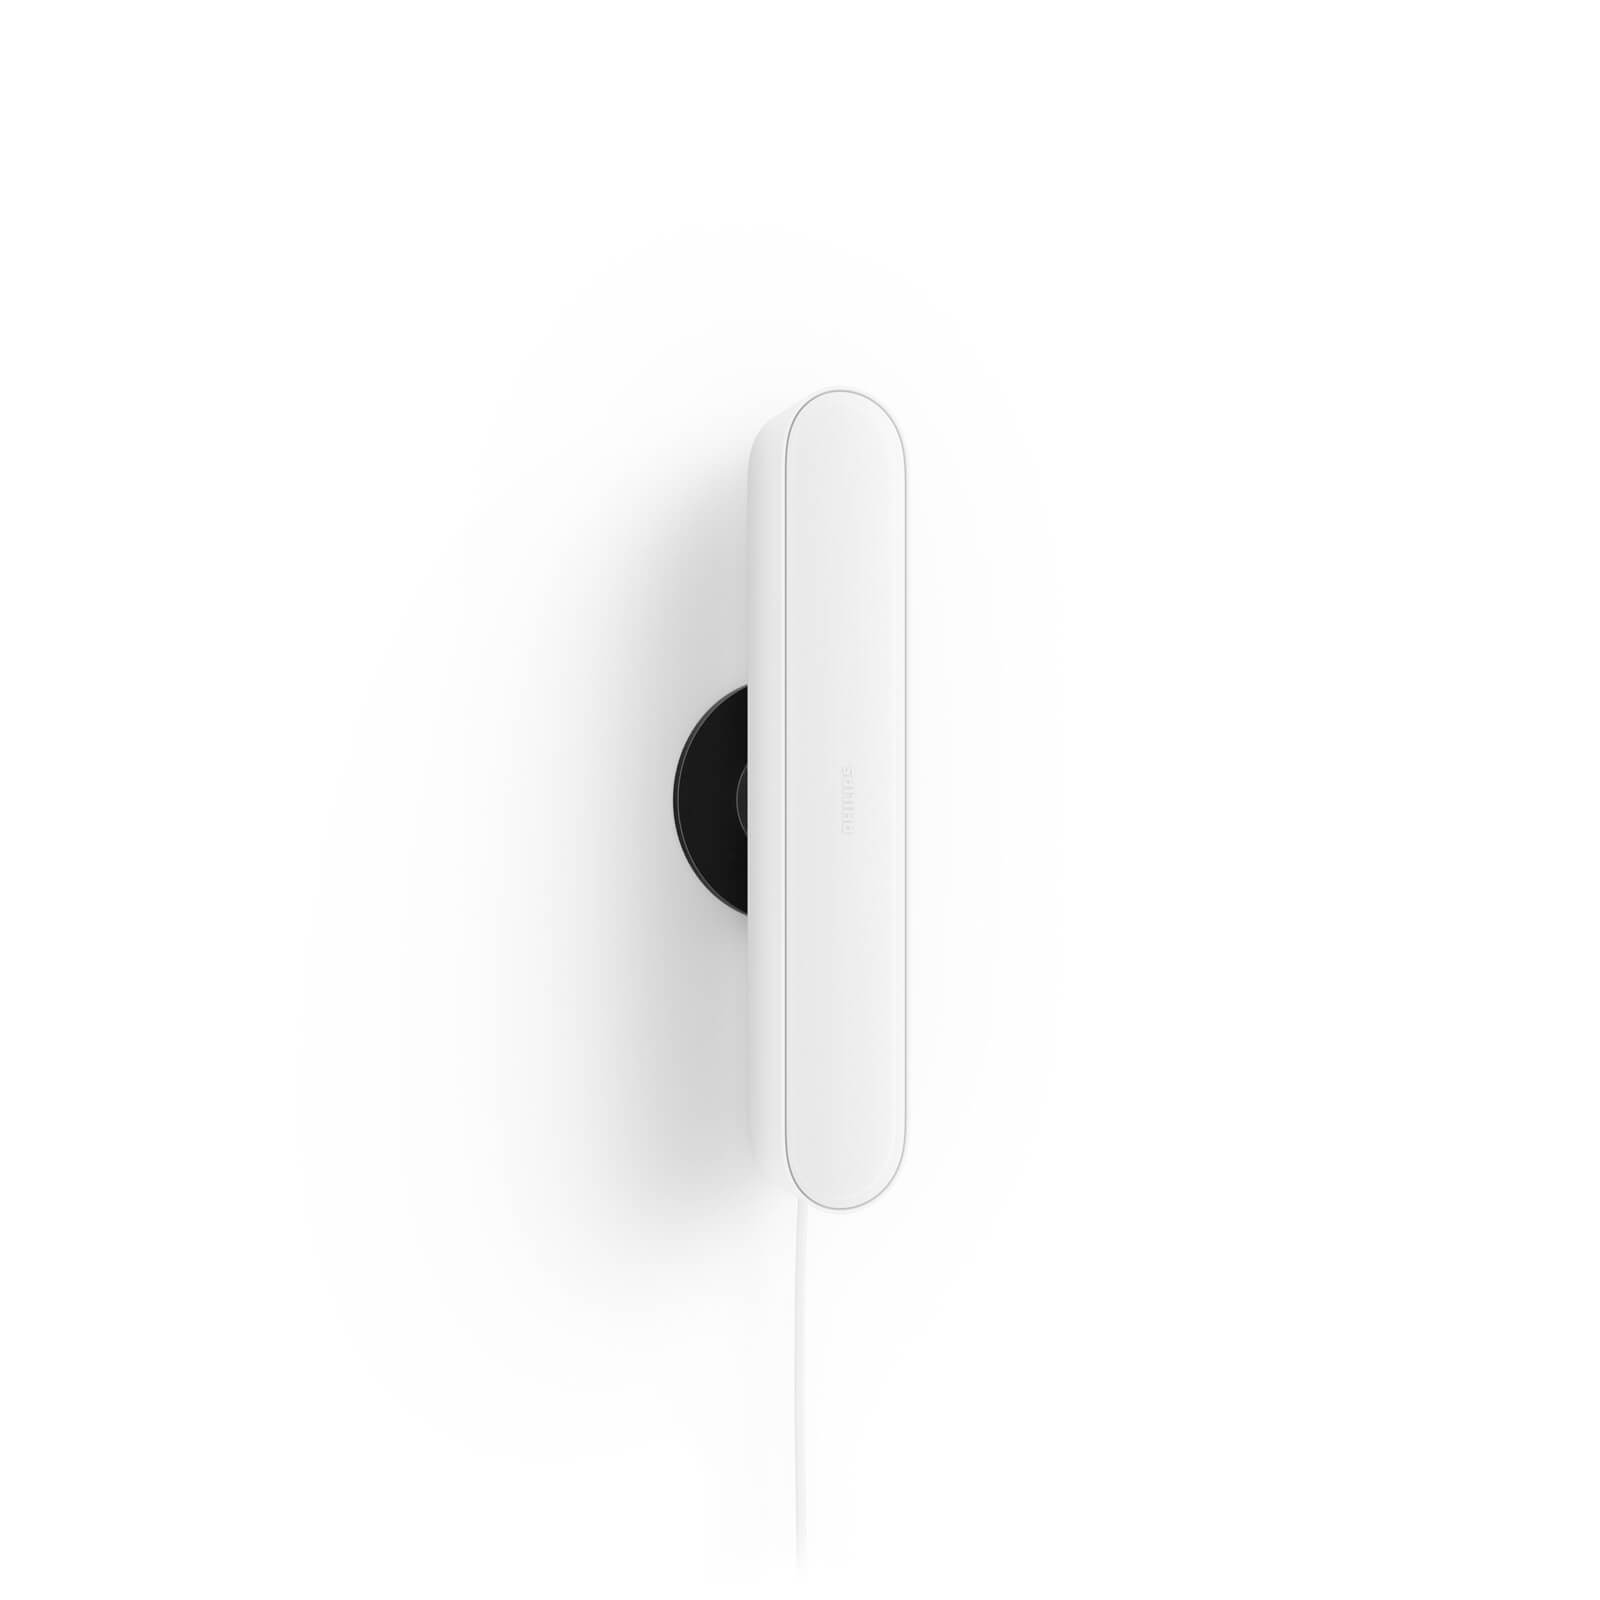 philips hue play lichtbalk wit uitbreiding white and color. Black Bedroom Furniture Sets. Home Design Ideas